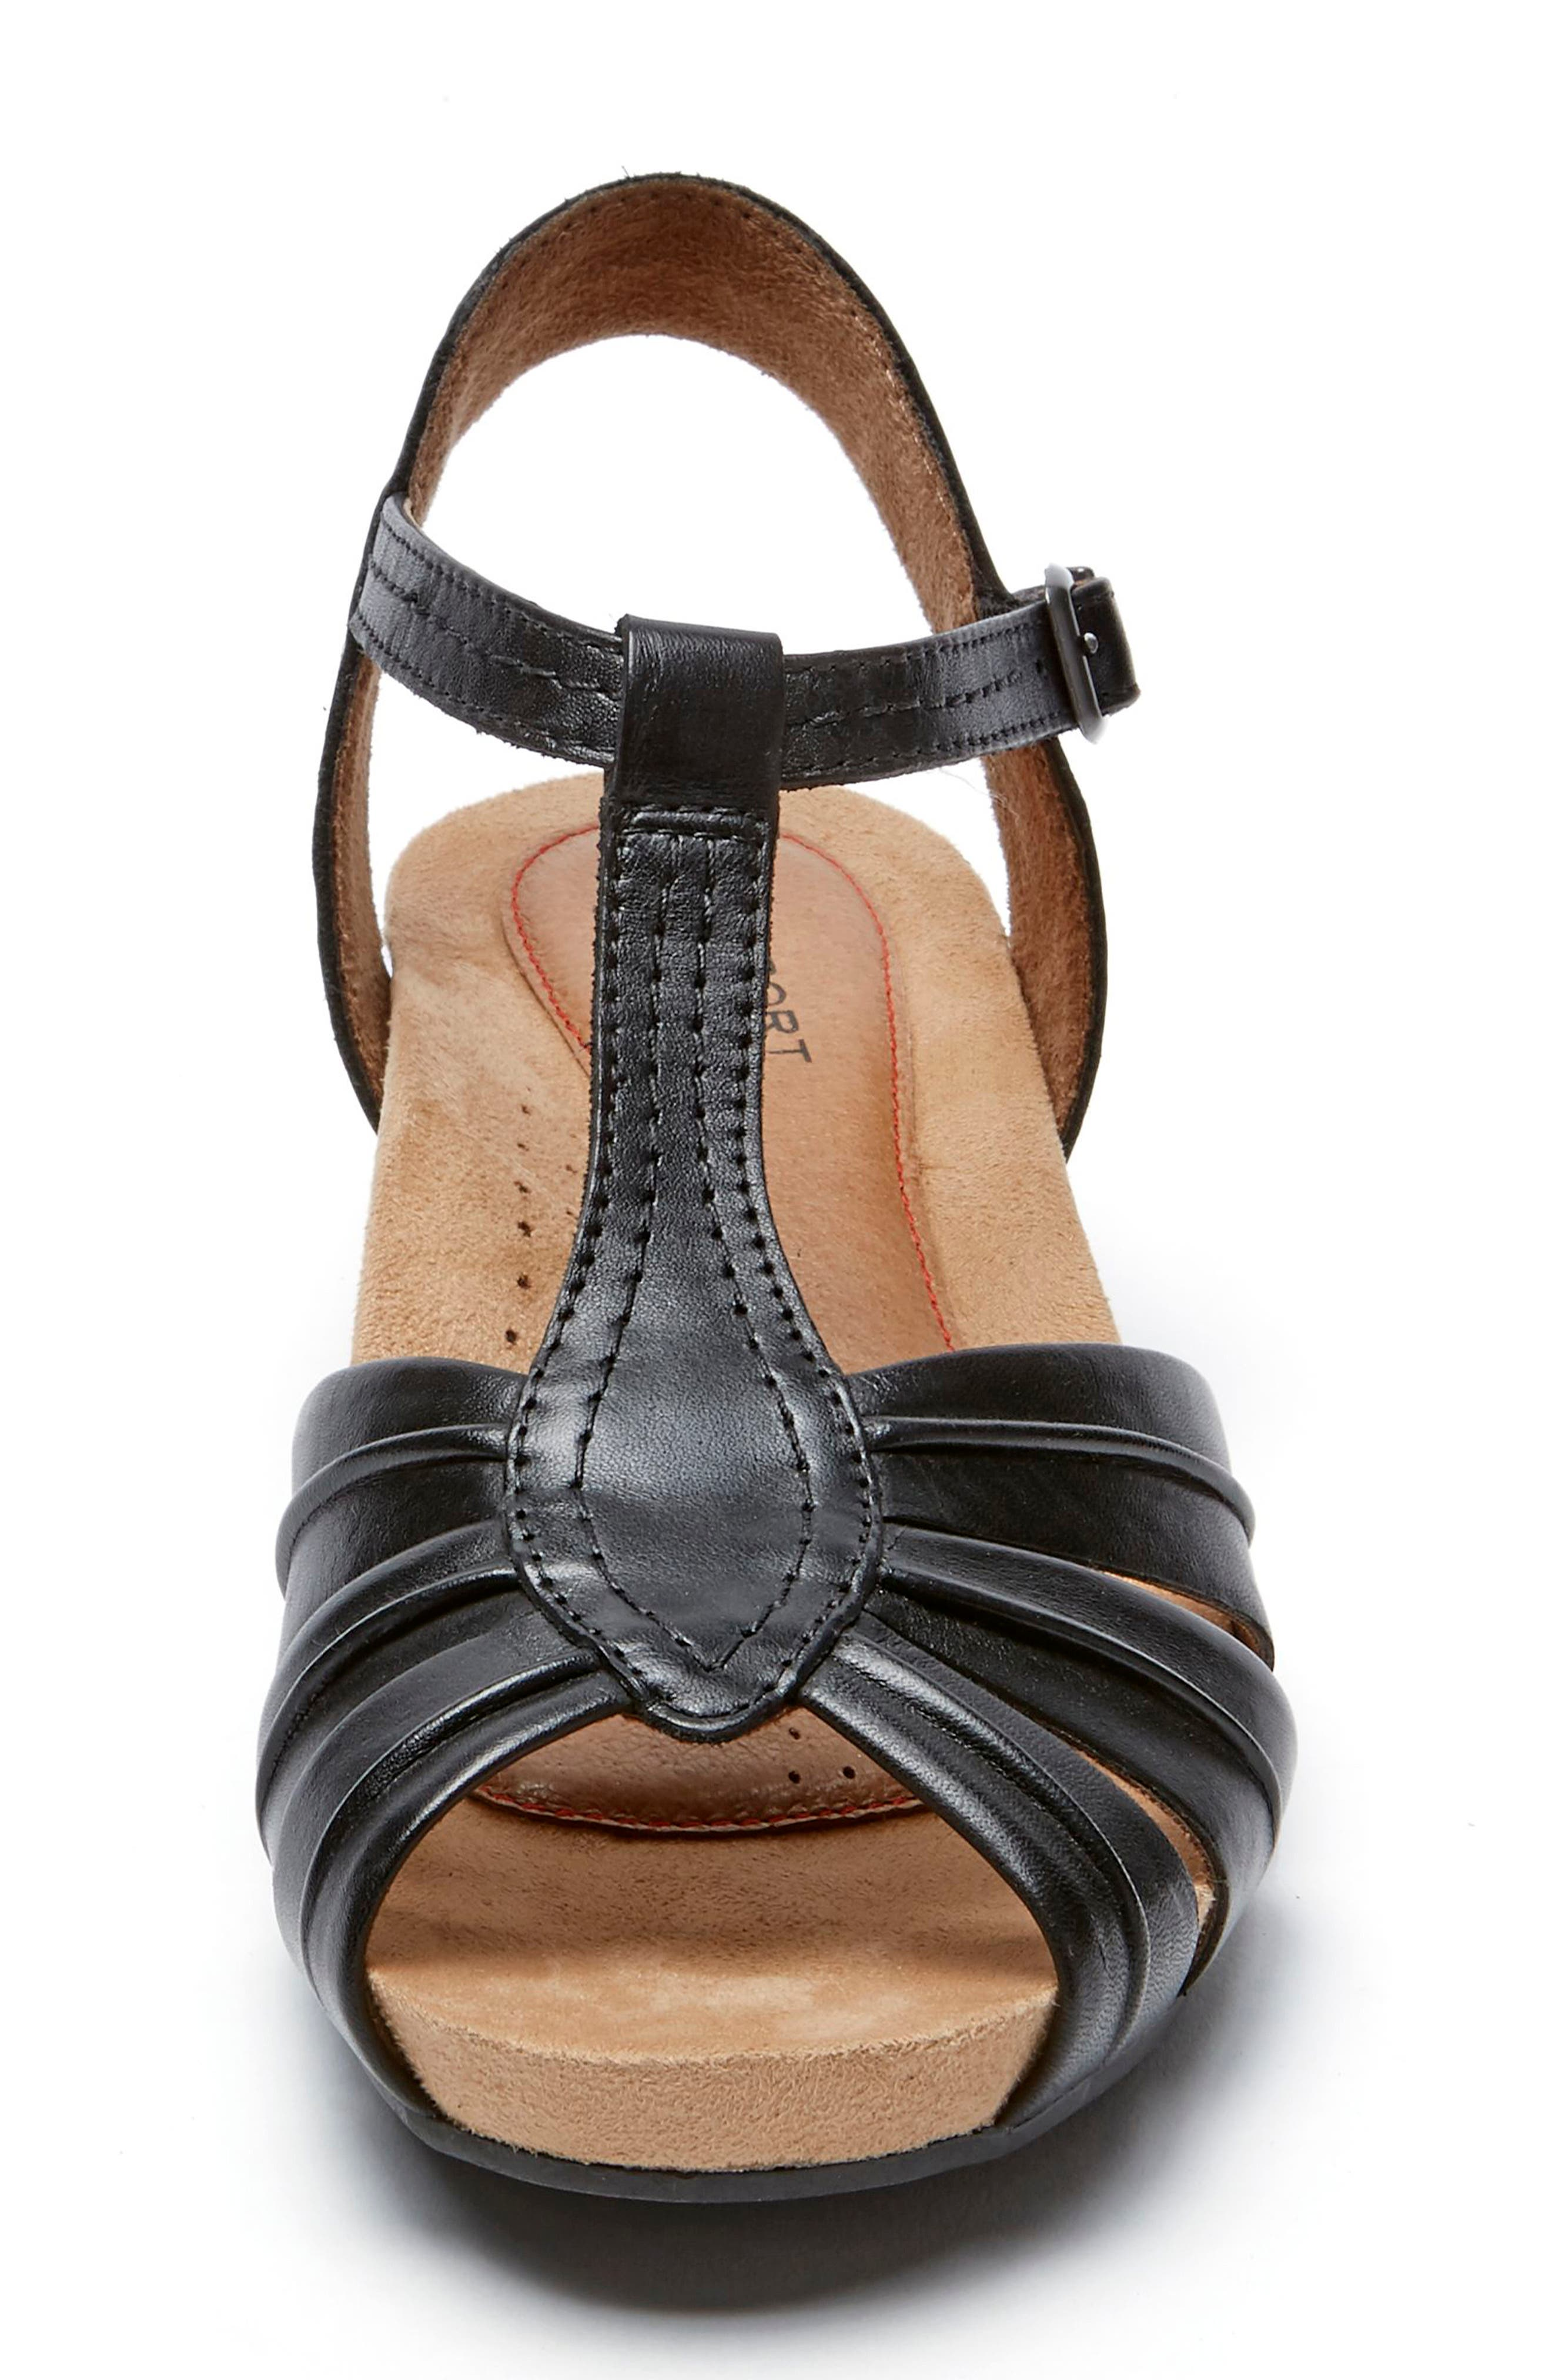 Hollywood Pleat Wedge Sandal,                             Alternate thumbnail 3, color,                             Black Leather